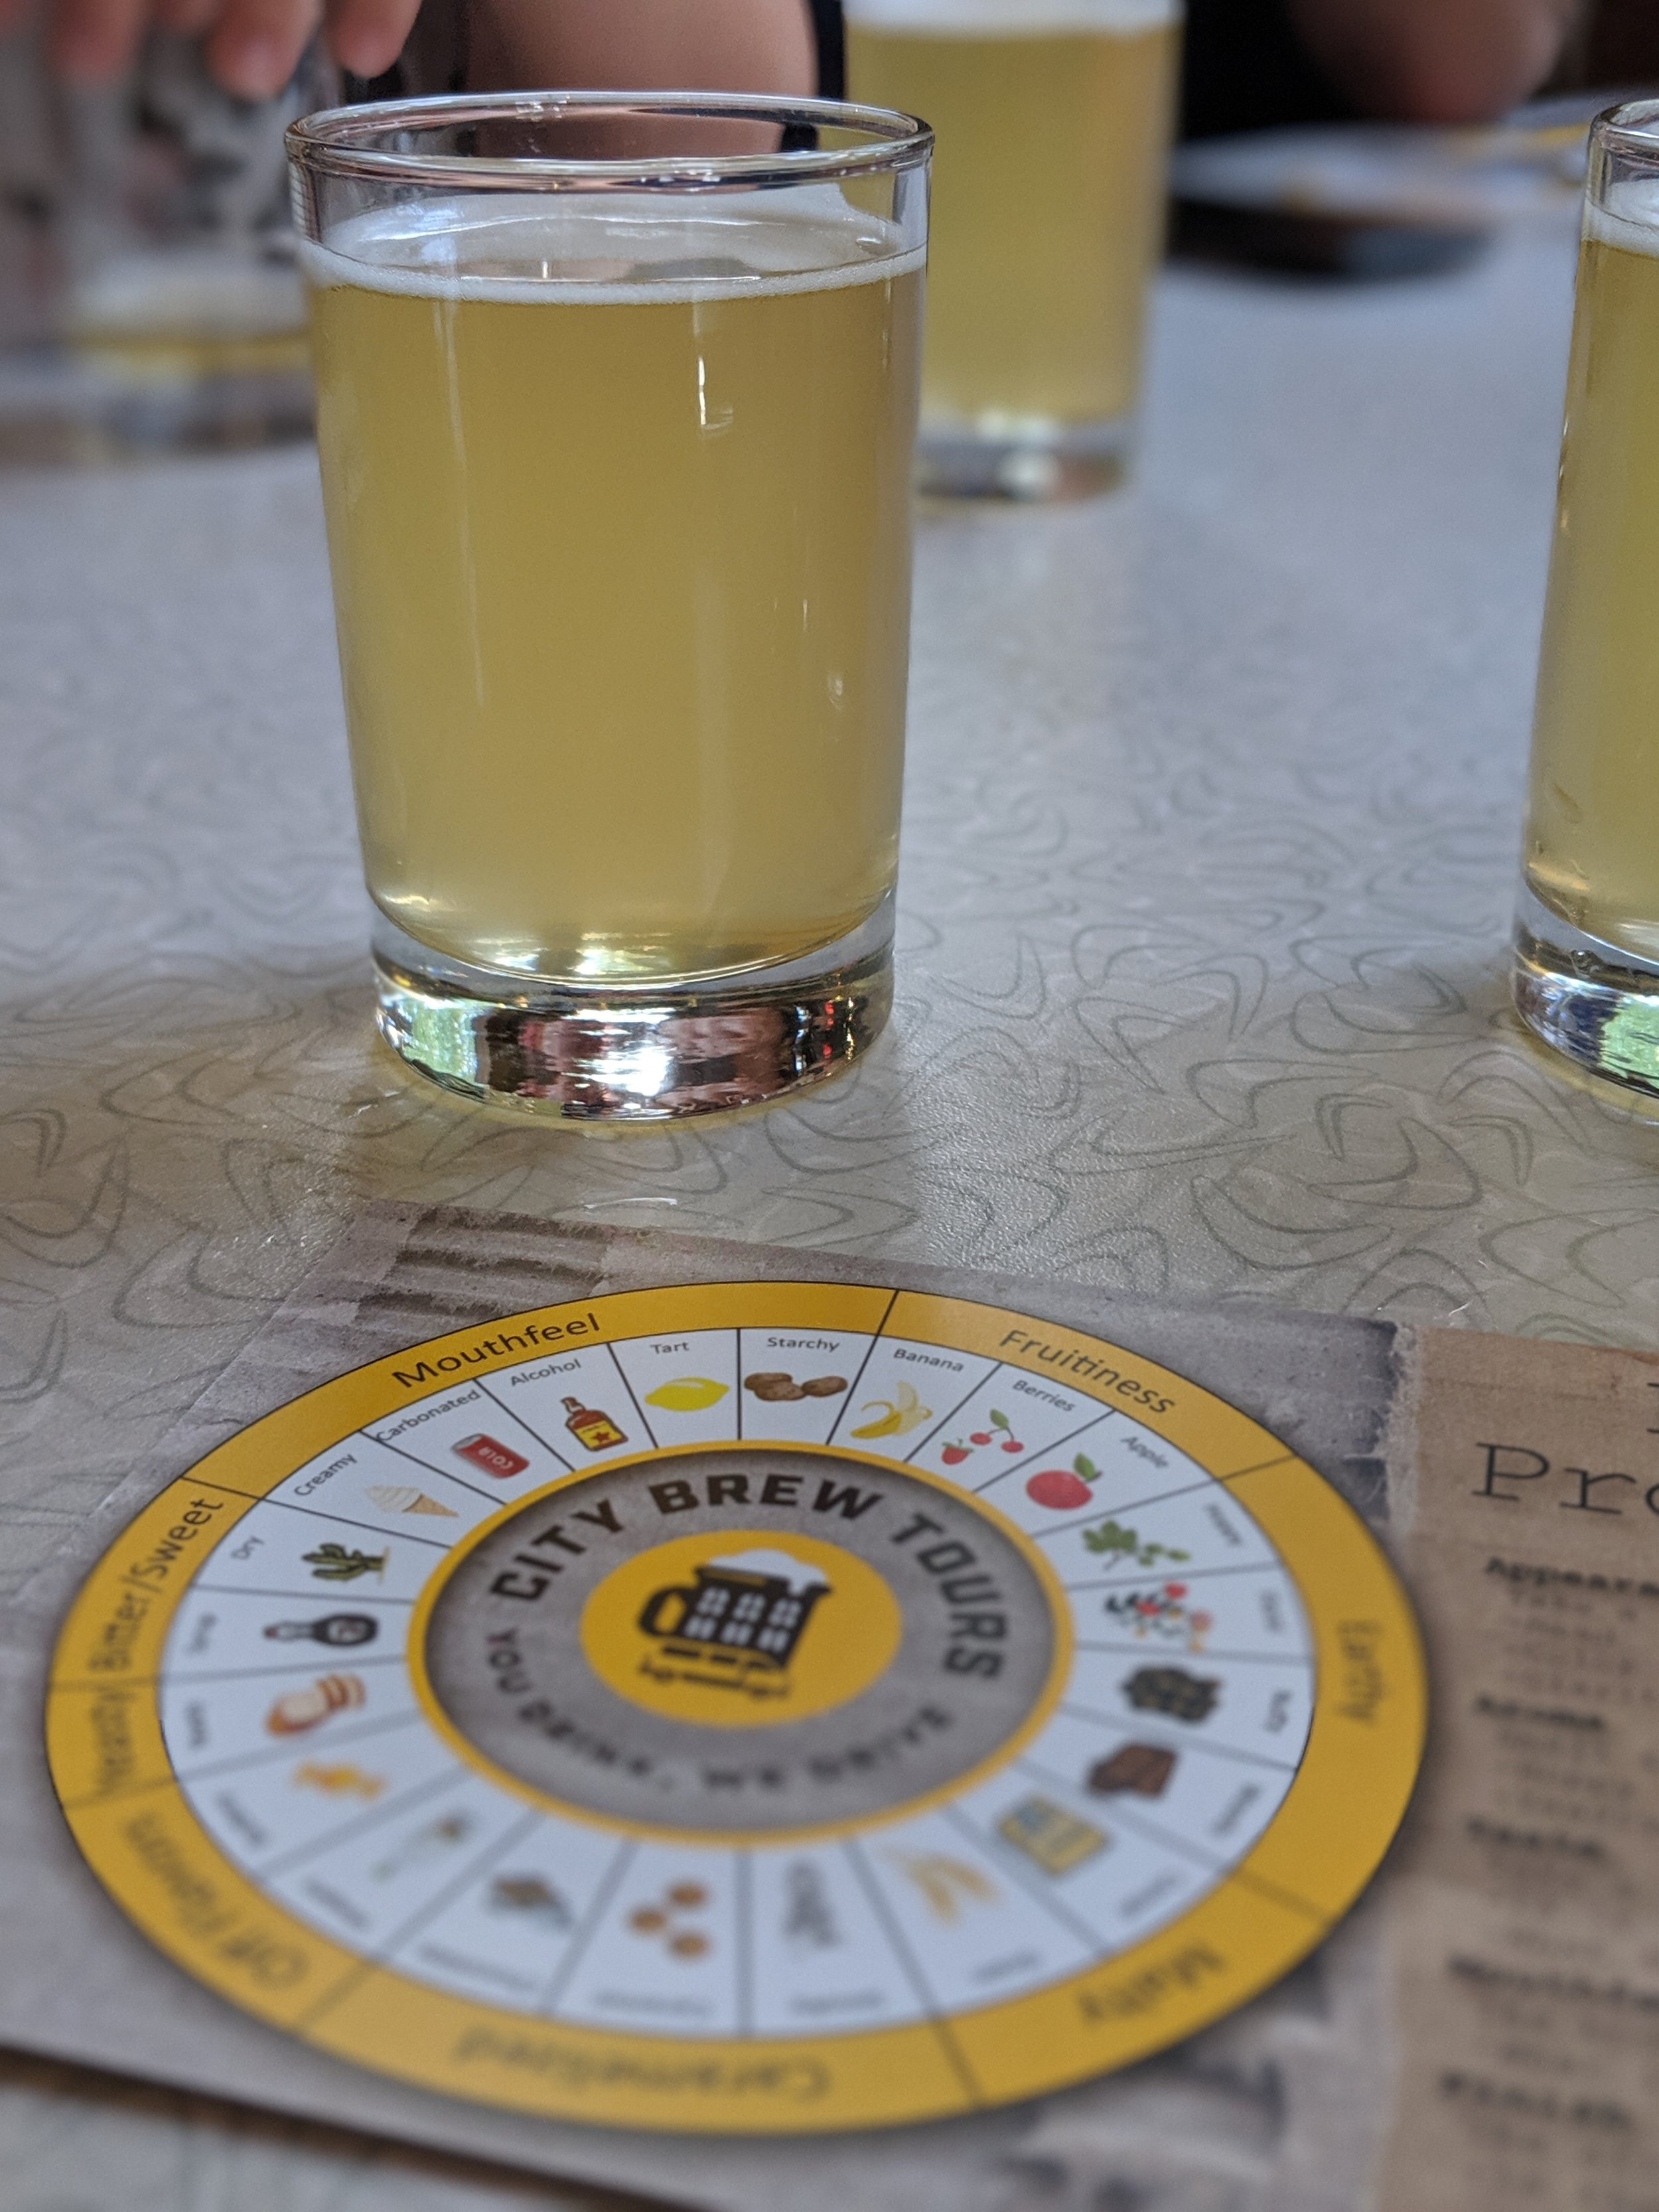 City brew tours' wheel of flavour. A guide of Montreal breweries